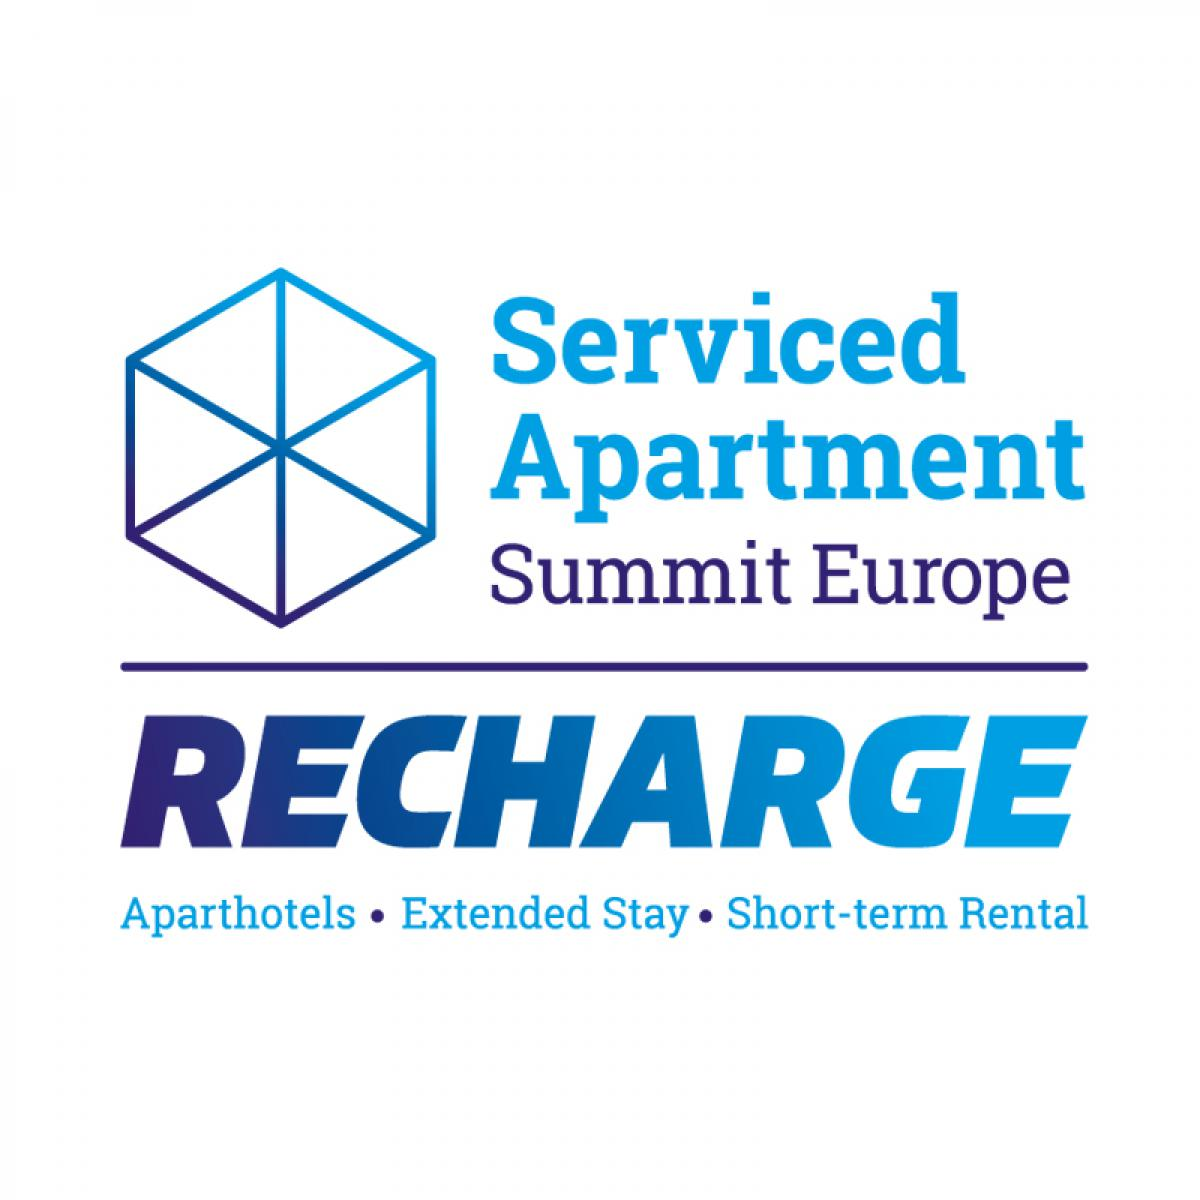 Colonia Nova - Serviced Apartment Summit - Recharge